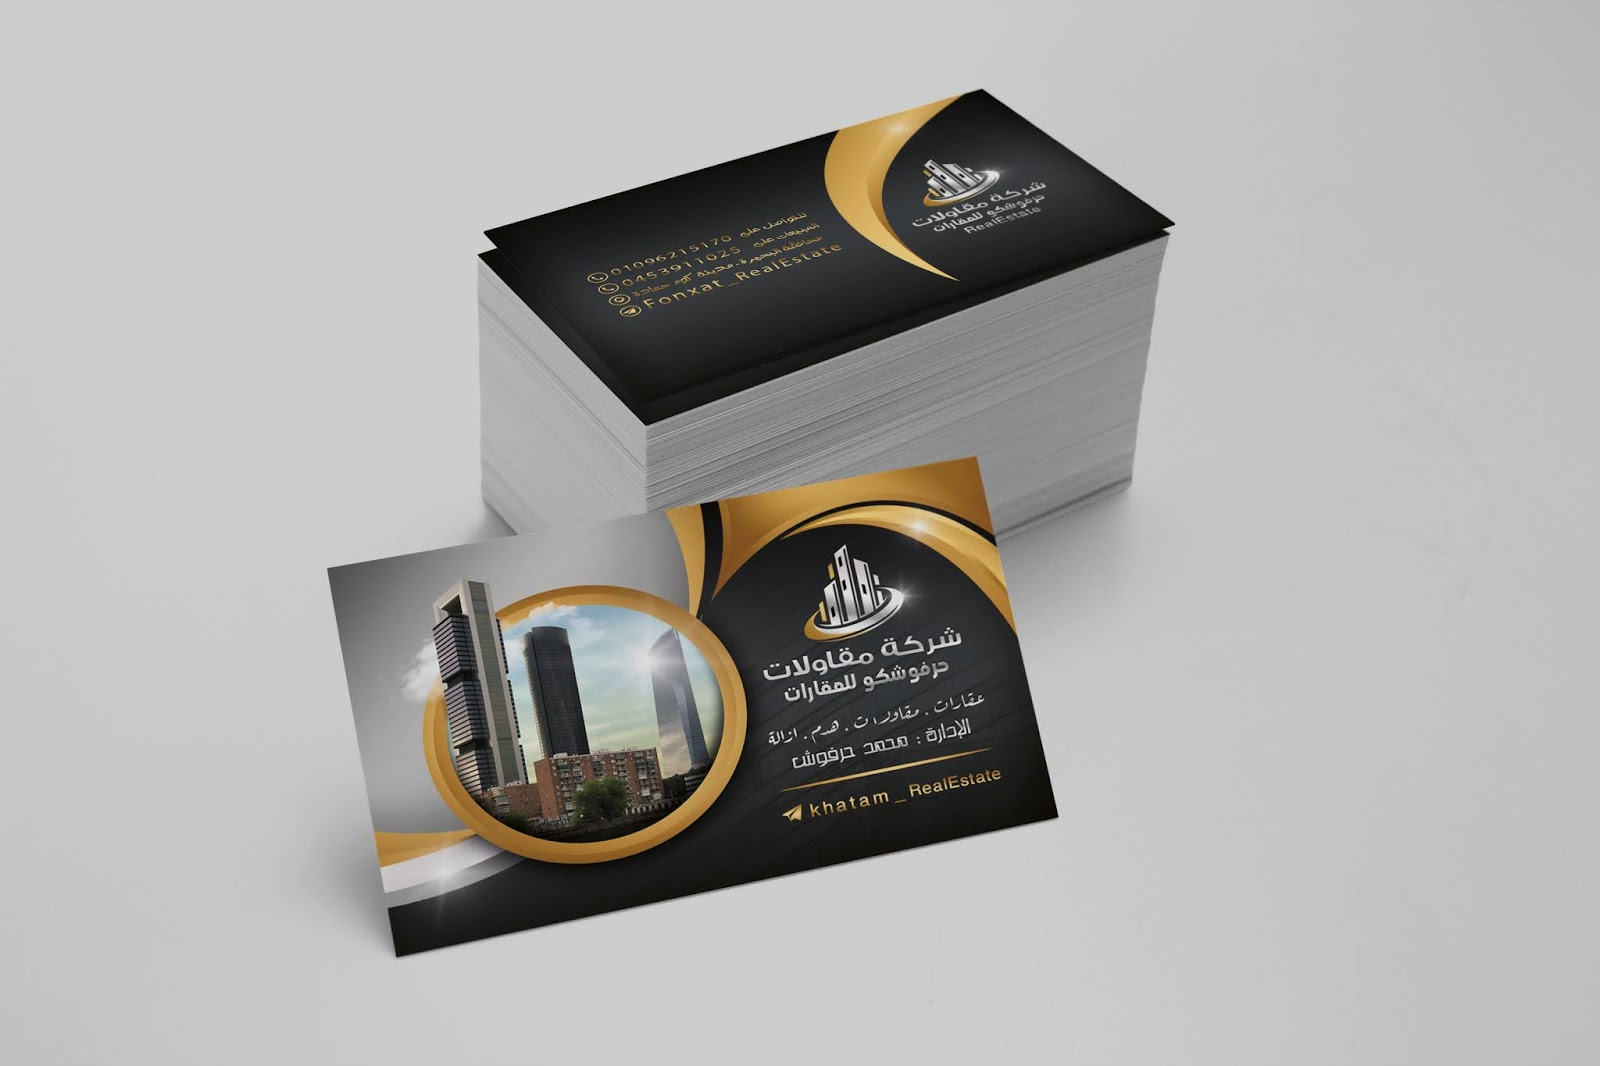 Download a personal card for real estate in the black color combined with the golden and silver colors